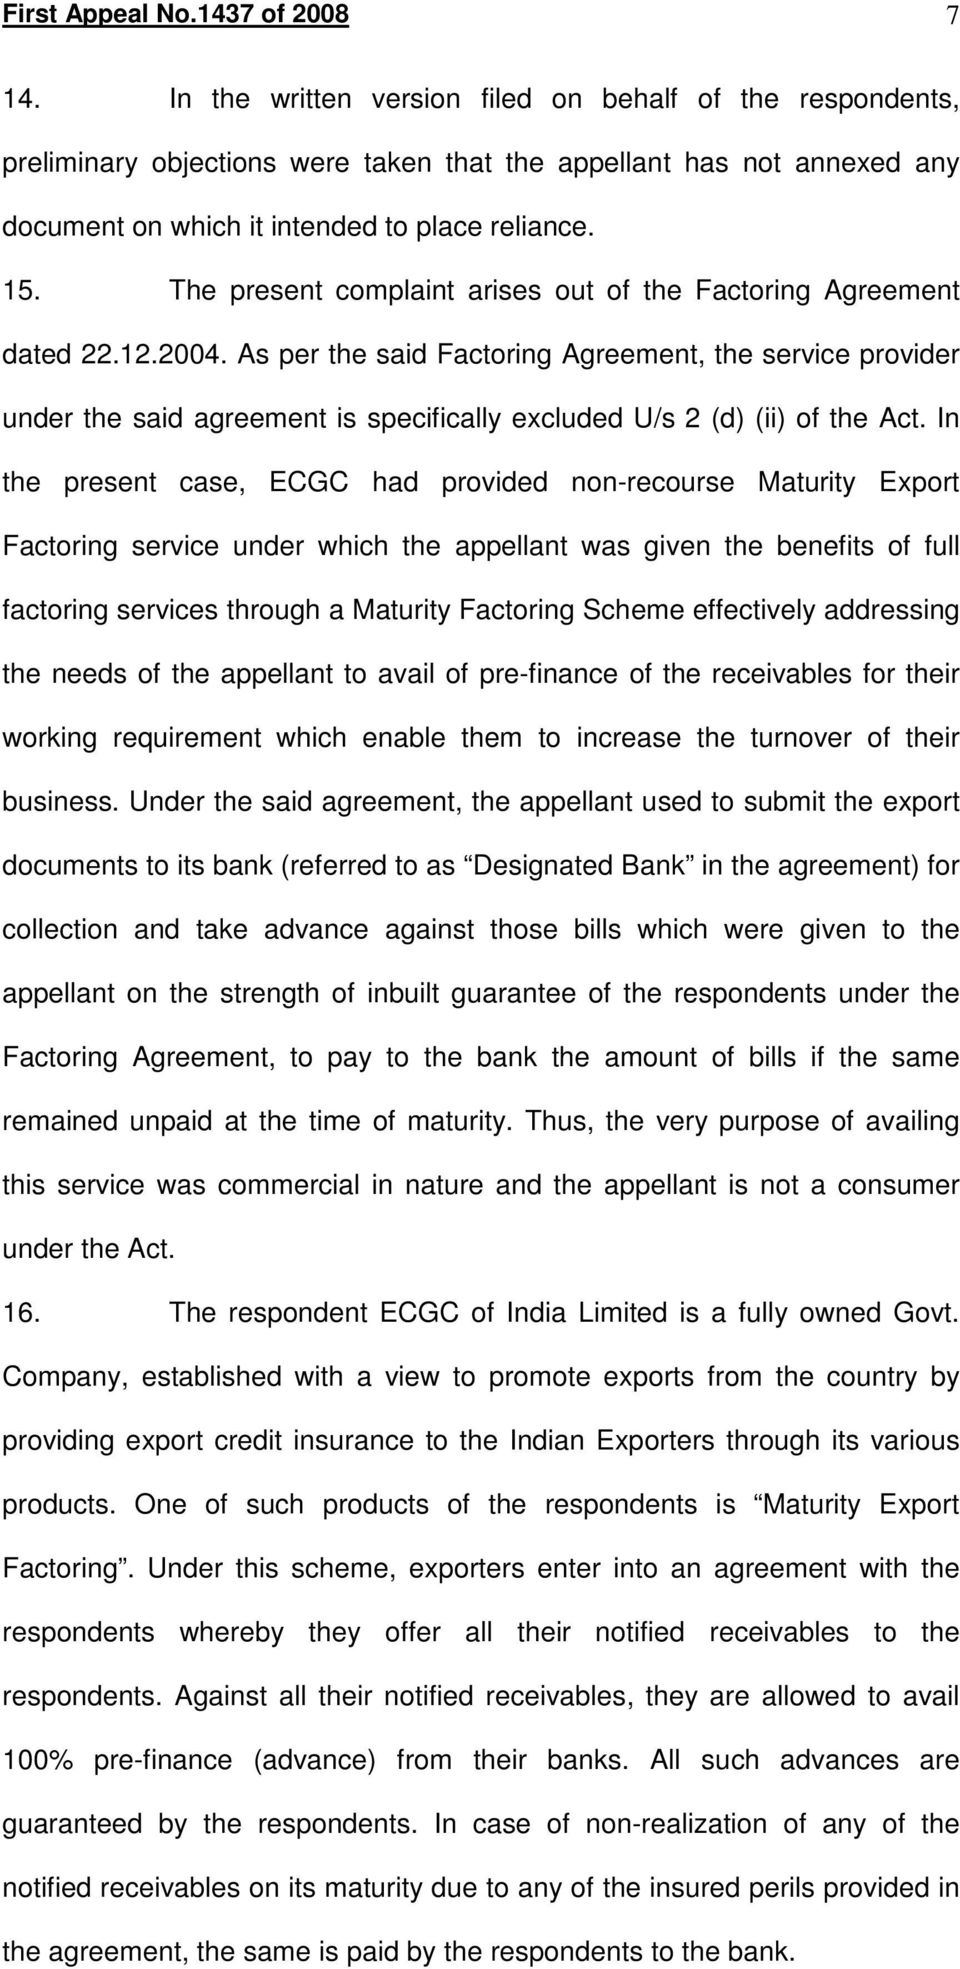 The present complaint arises out of the Factoring Agreement dated 22.12.2004.